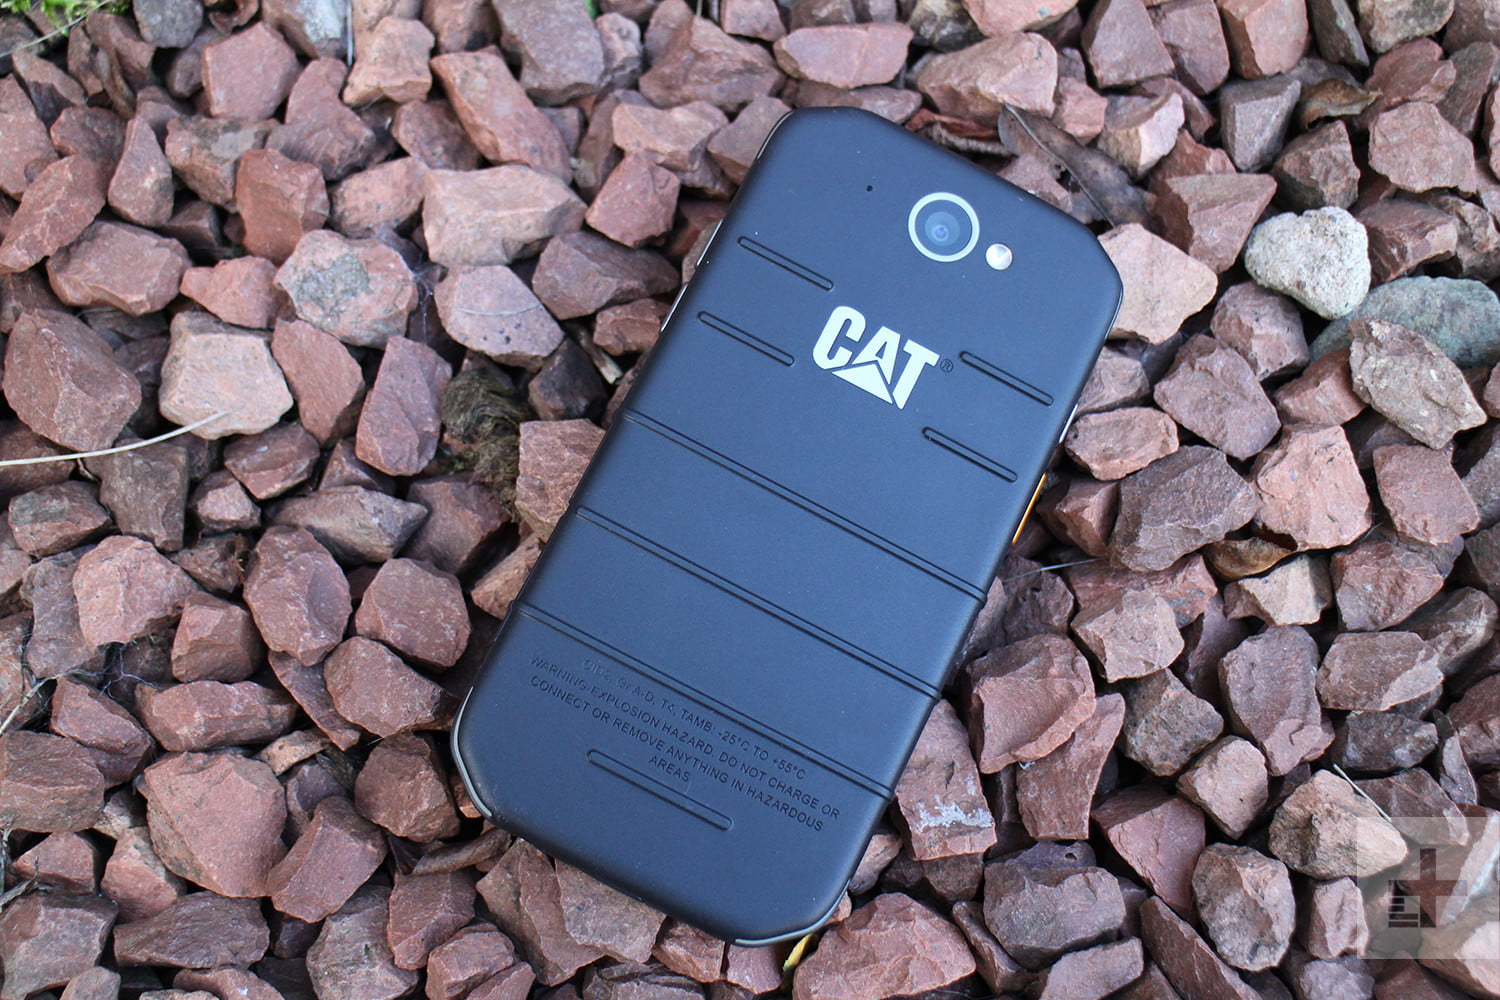 The Cat S48c is the phone designed for construction workers (or the clumsy)